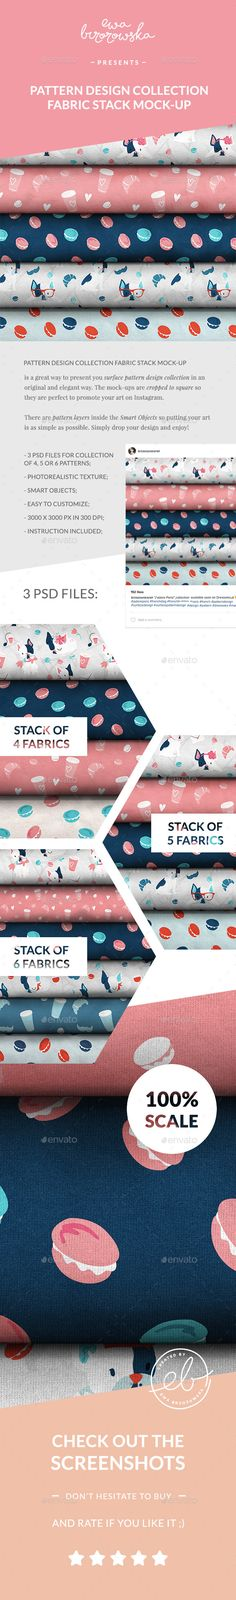 Pattern Design Collection Fabric Stack Mock-up - Miscellaneous Apparel